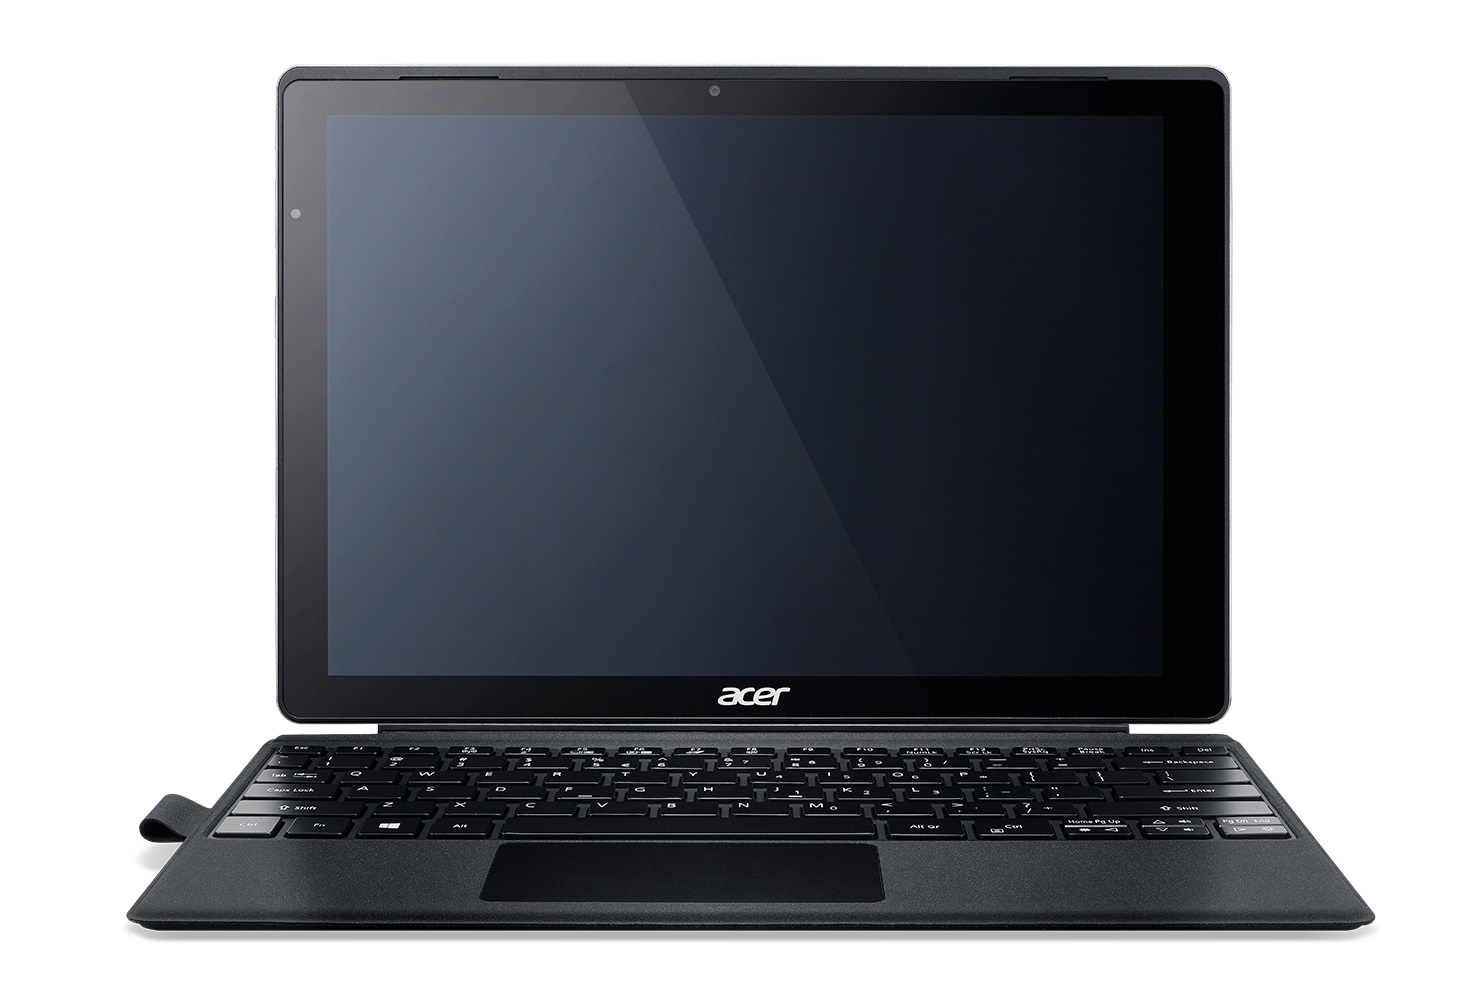 Acer Aspire Switch Alpha 12/i3-6100U/128G/4G/W10